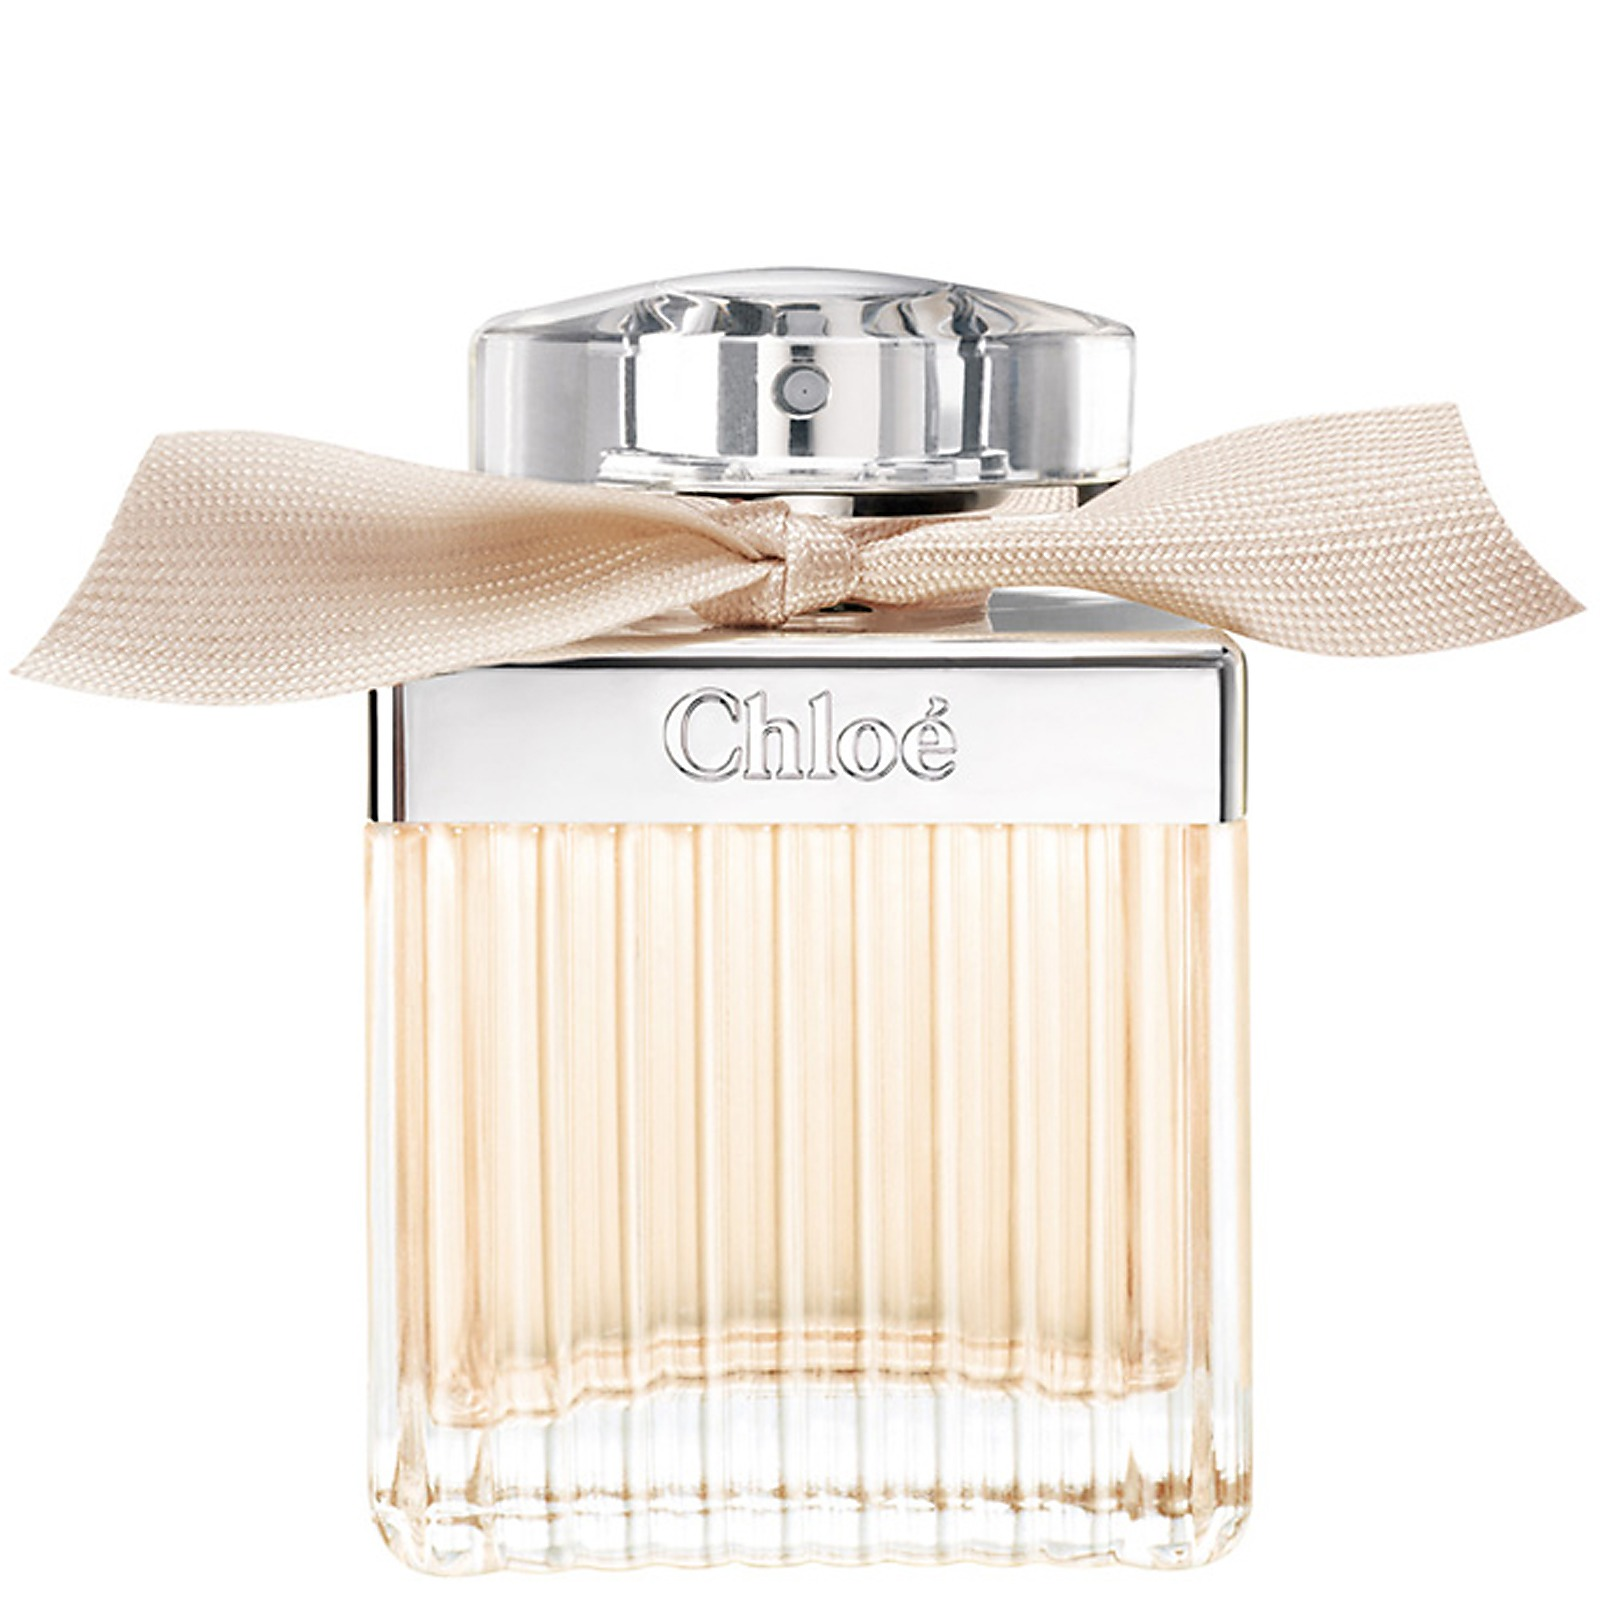 Chloé For Her Eau de Parfum Spray 75ml